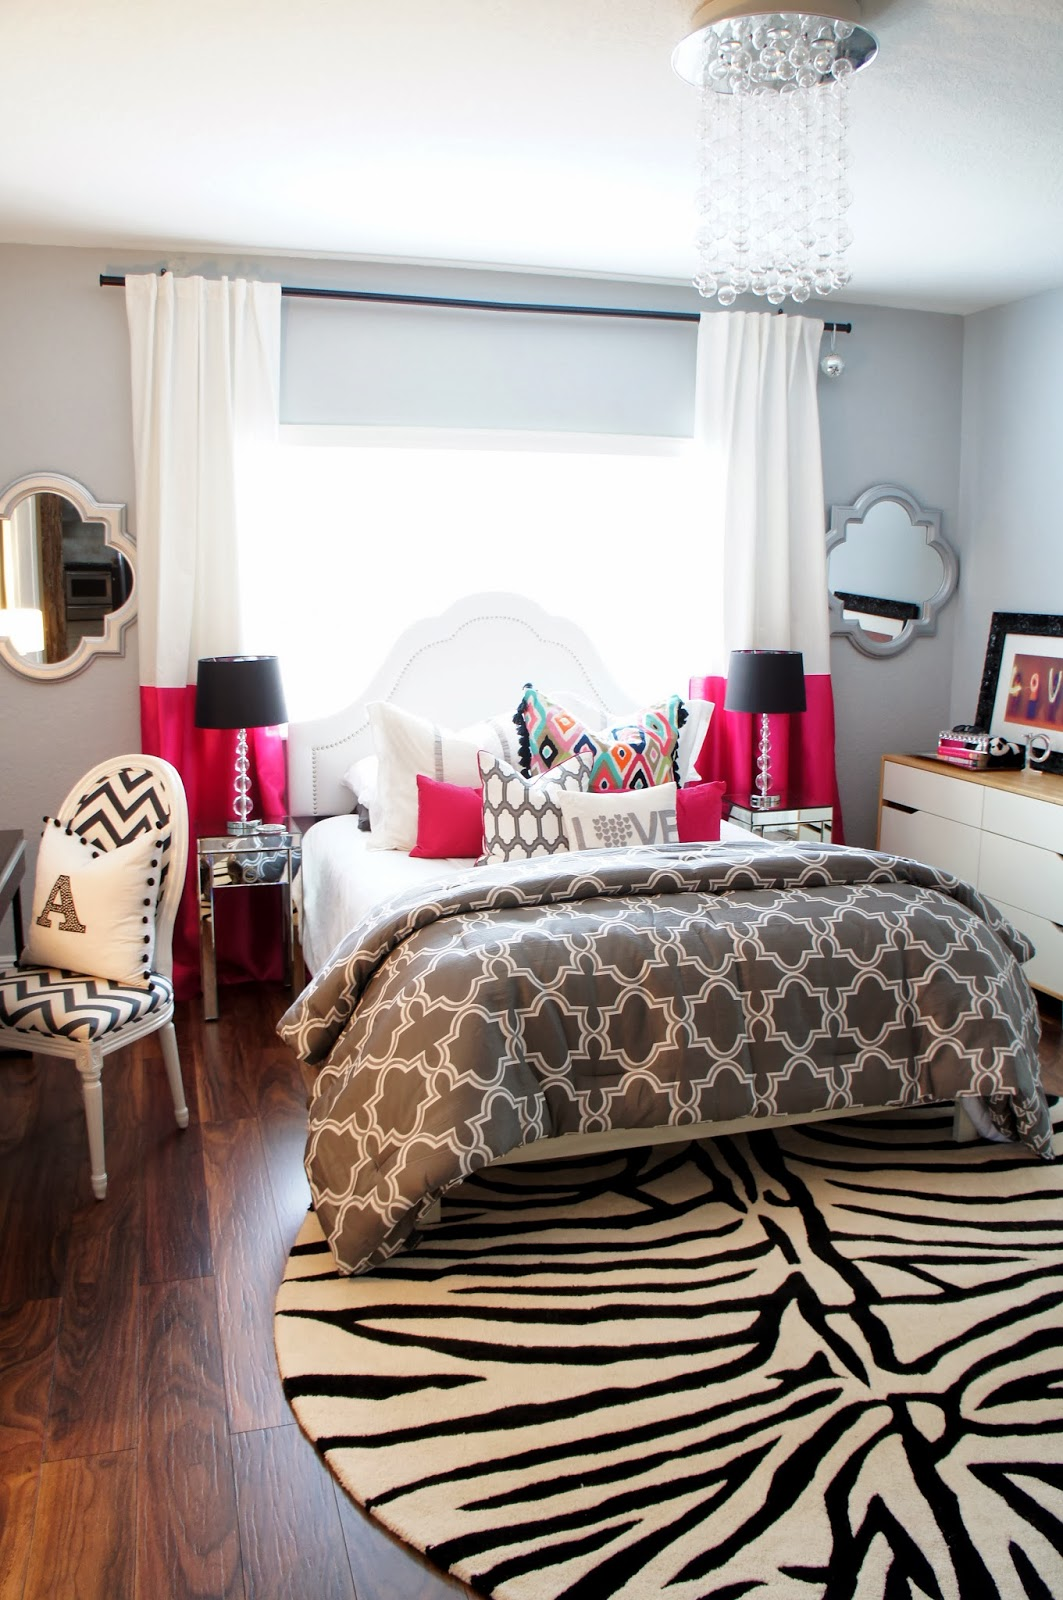 The Cuban In My Coffee: Teen Room Makeover, The Results ... on Rooms For Teens  id=81882